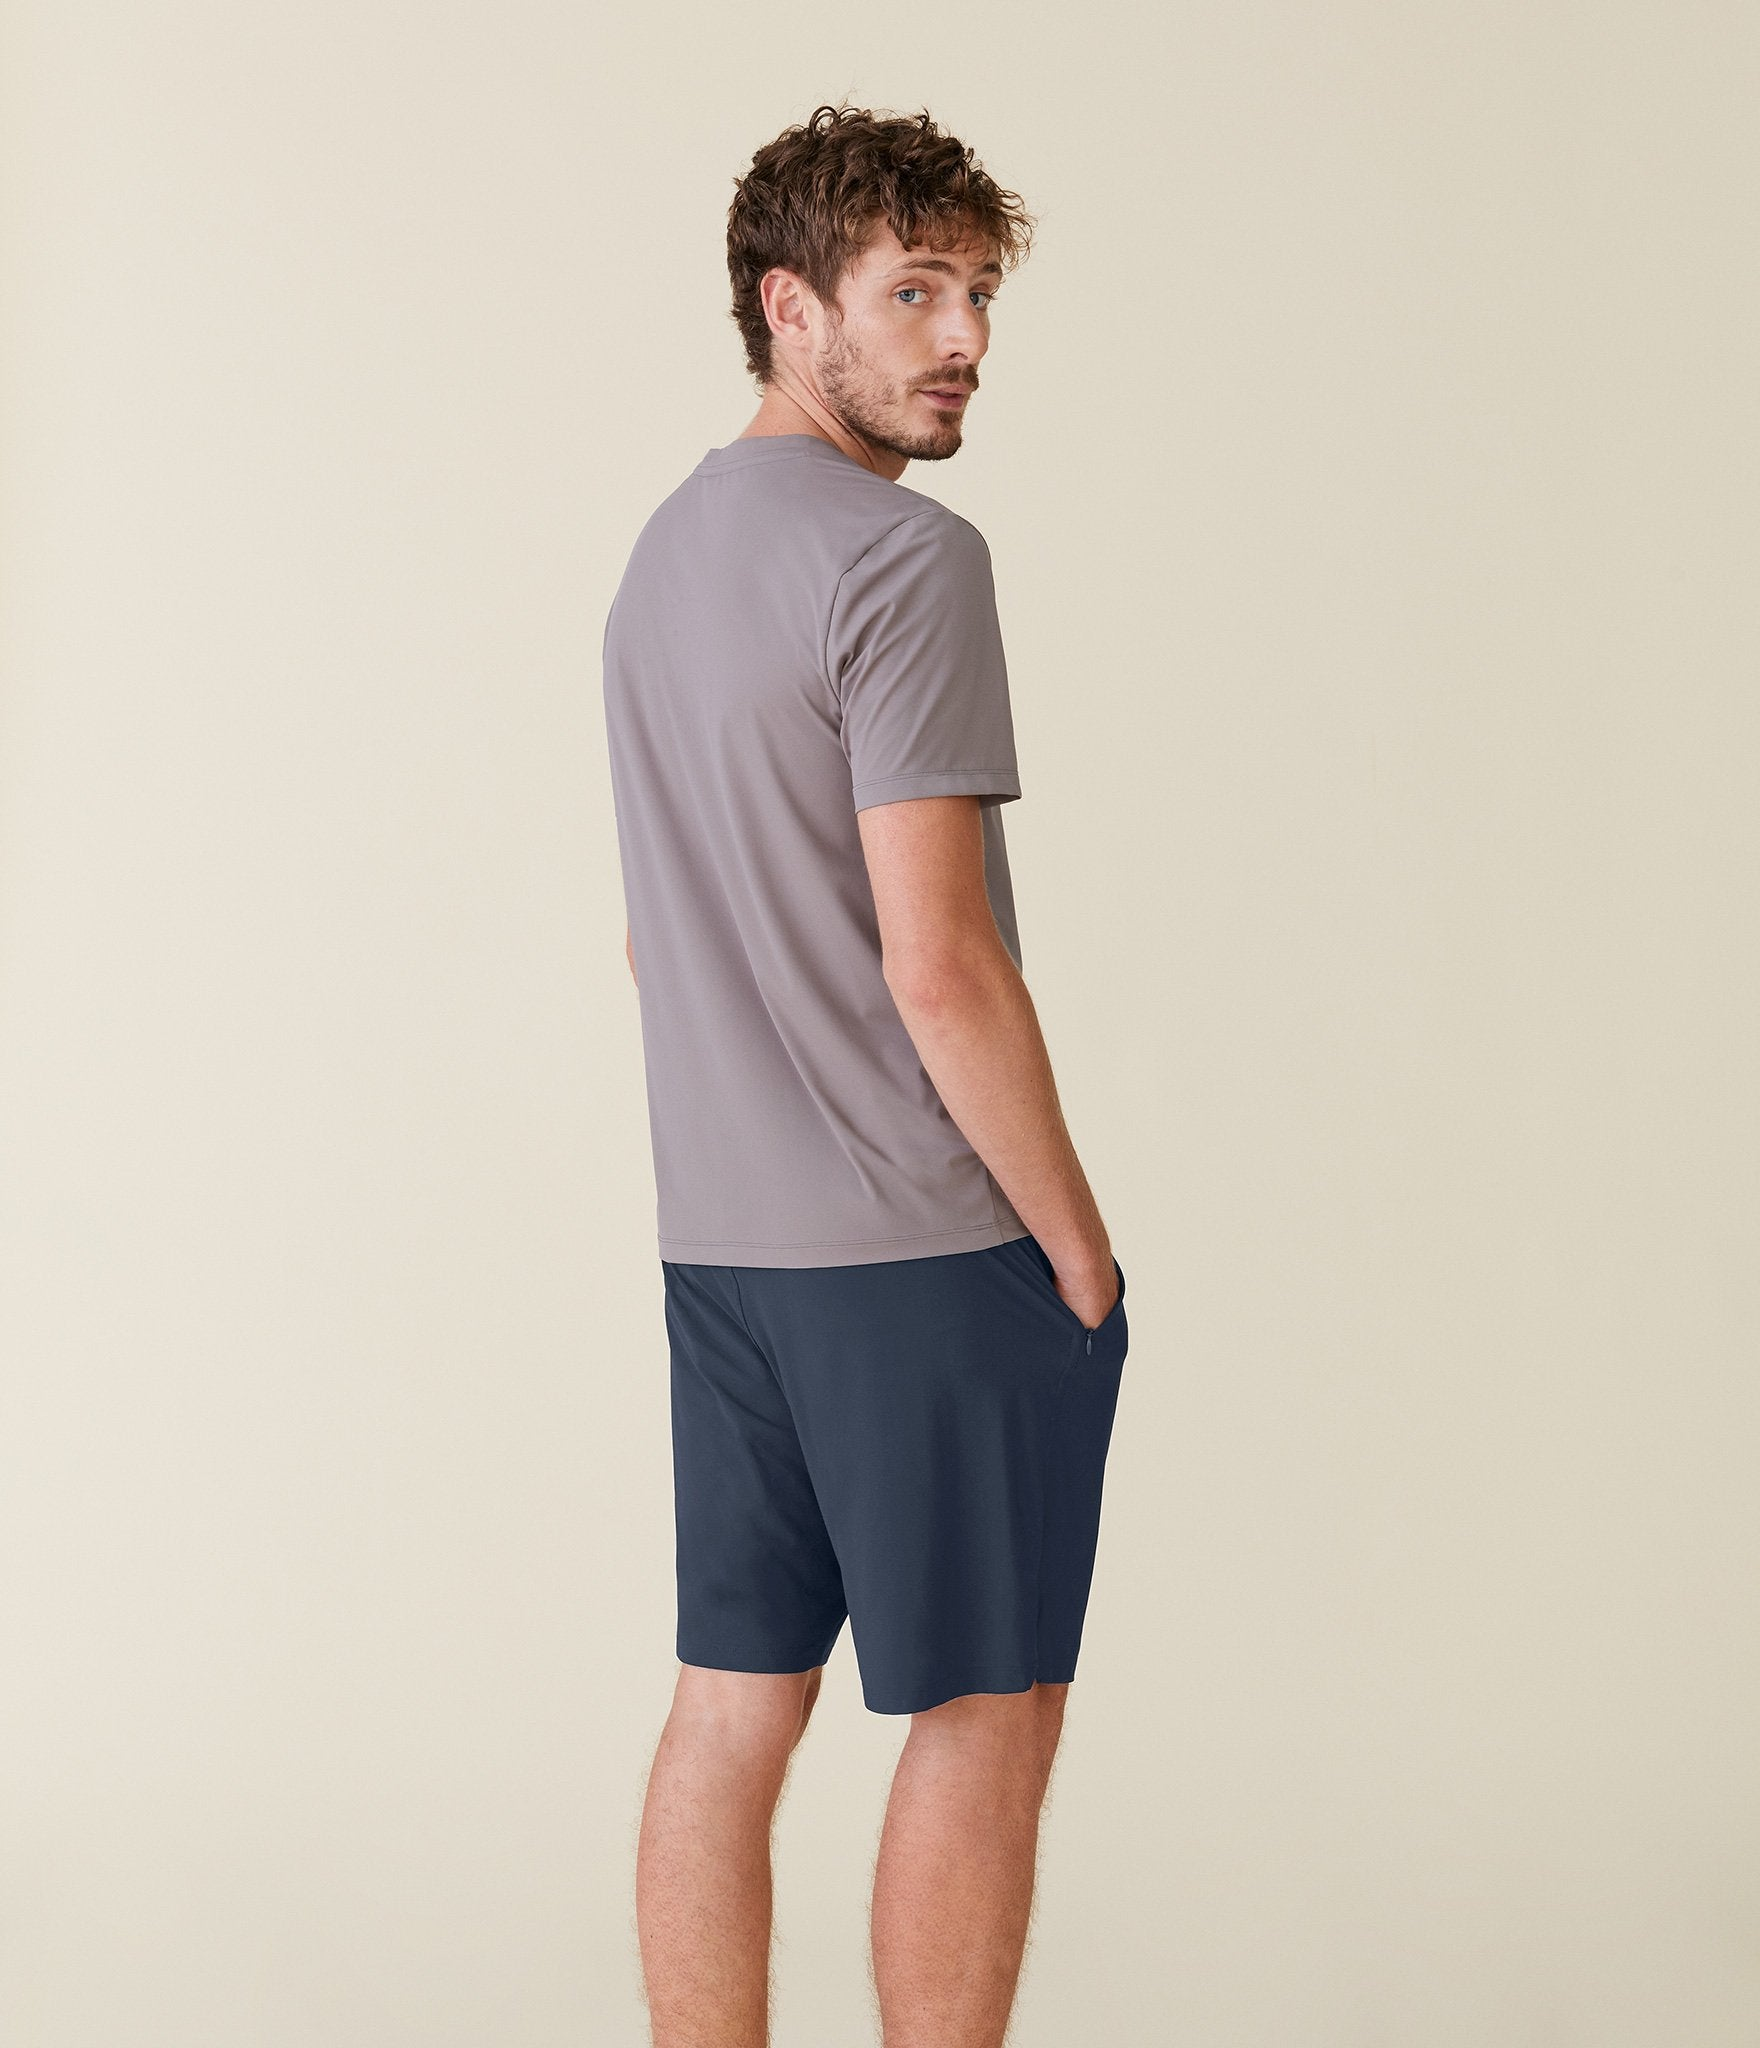 Soft shorts with inner pants. Composition: 71% polyamide, 29% elastane. Also available in Black. Tryst Stockholm is a Scandinavian clothing brand for an active urban lifestyle. Tryst means any meeting of special significance, whether public, personal or private, including those all-important meetings with oneself.